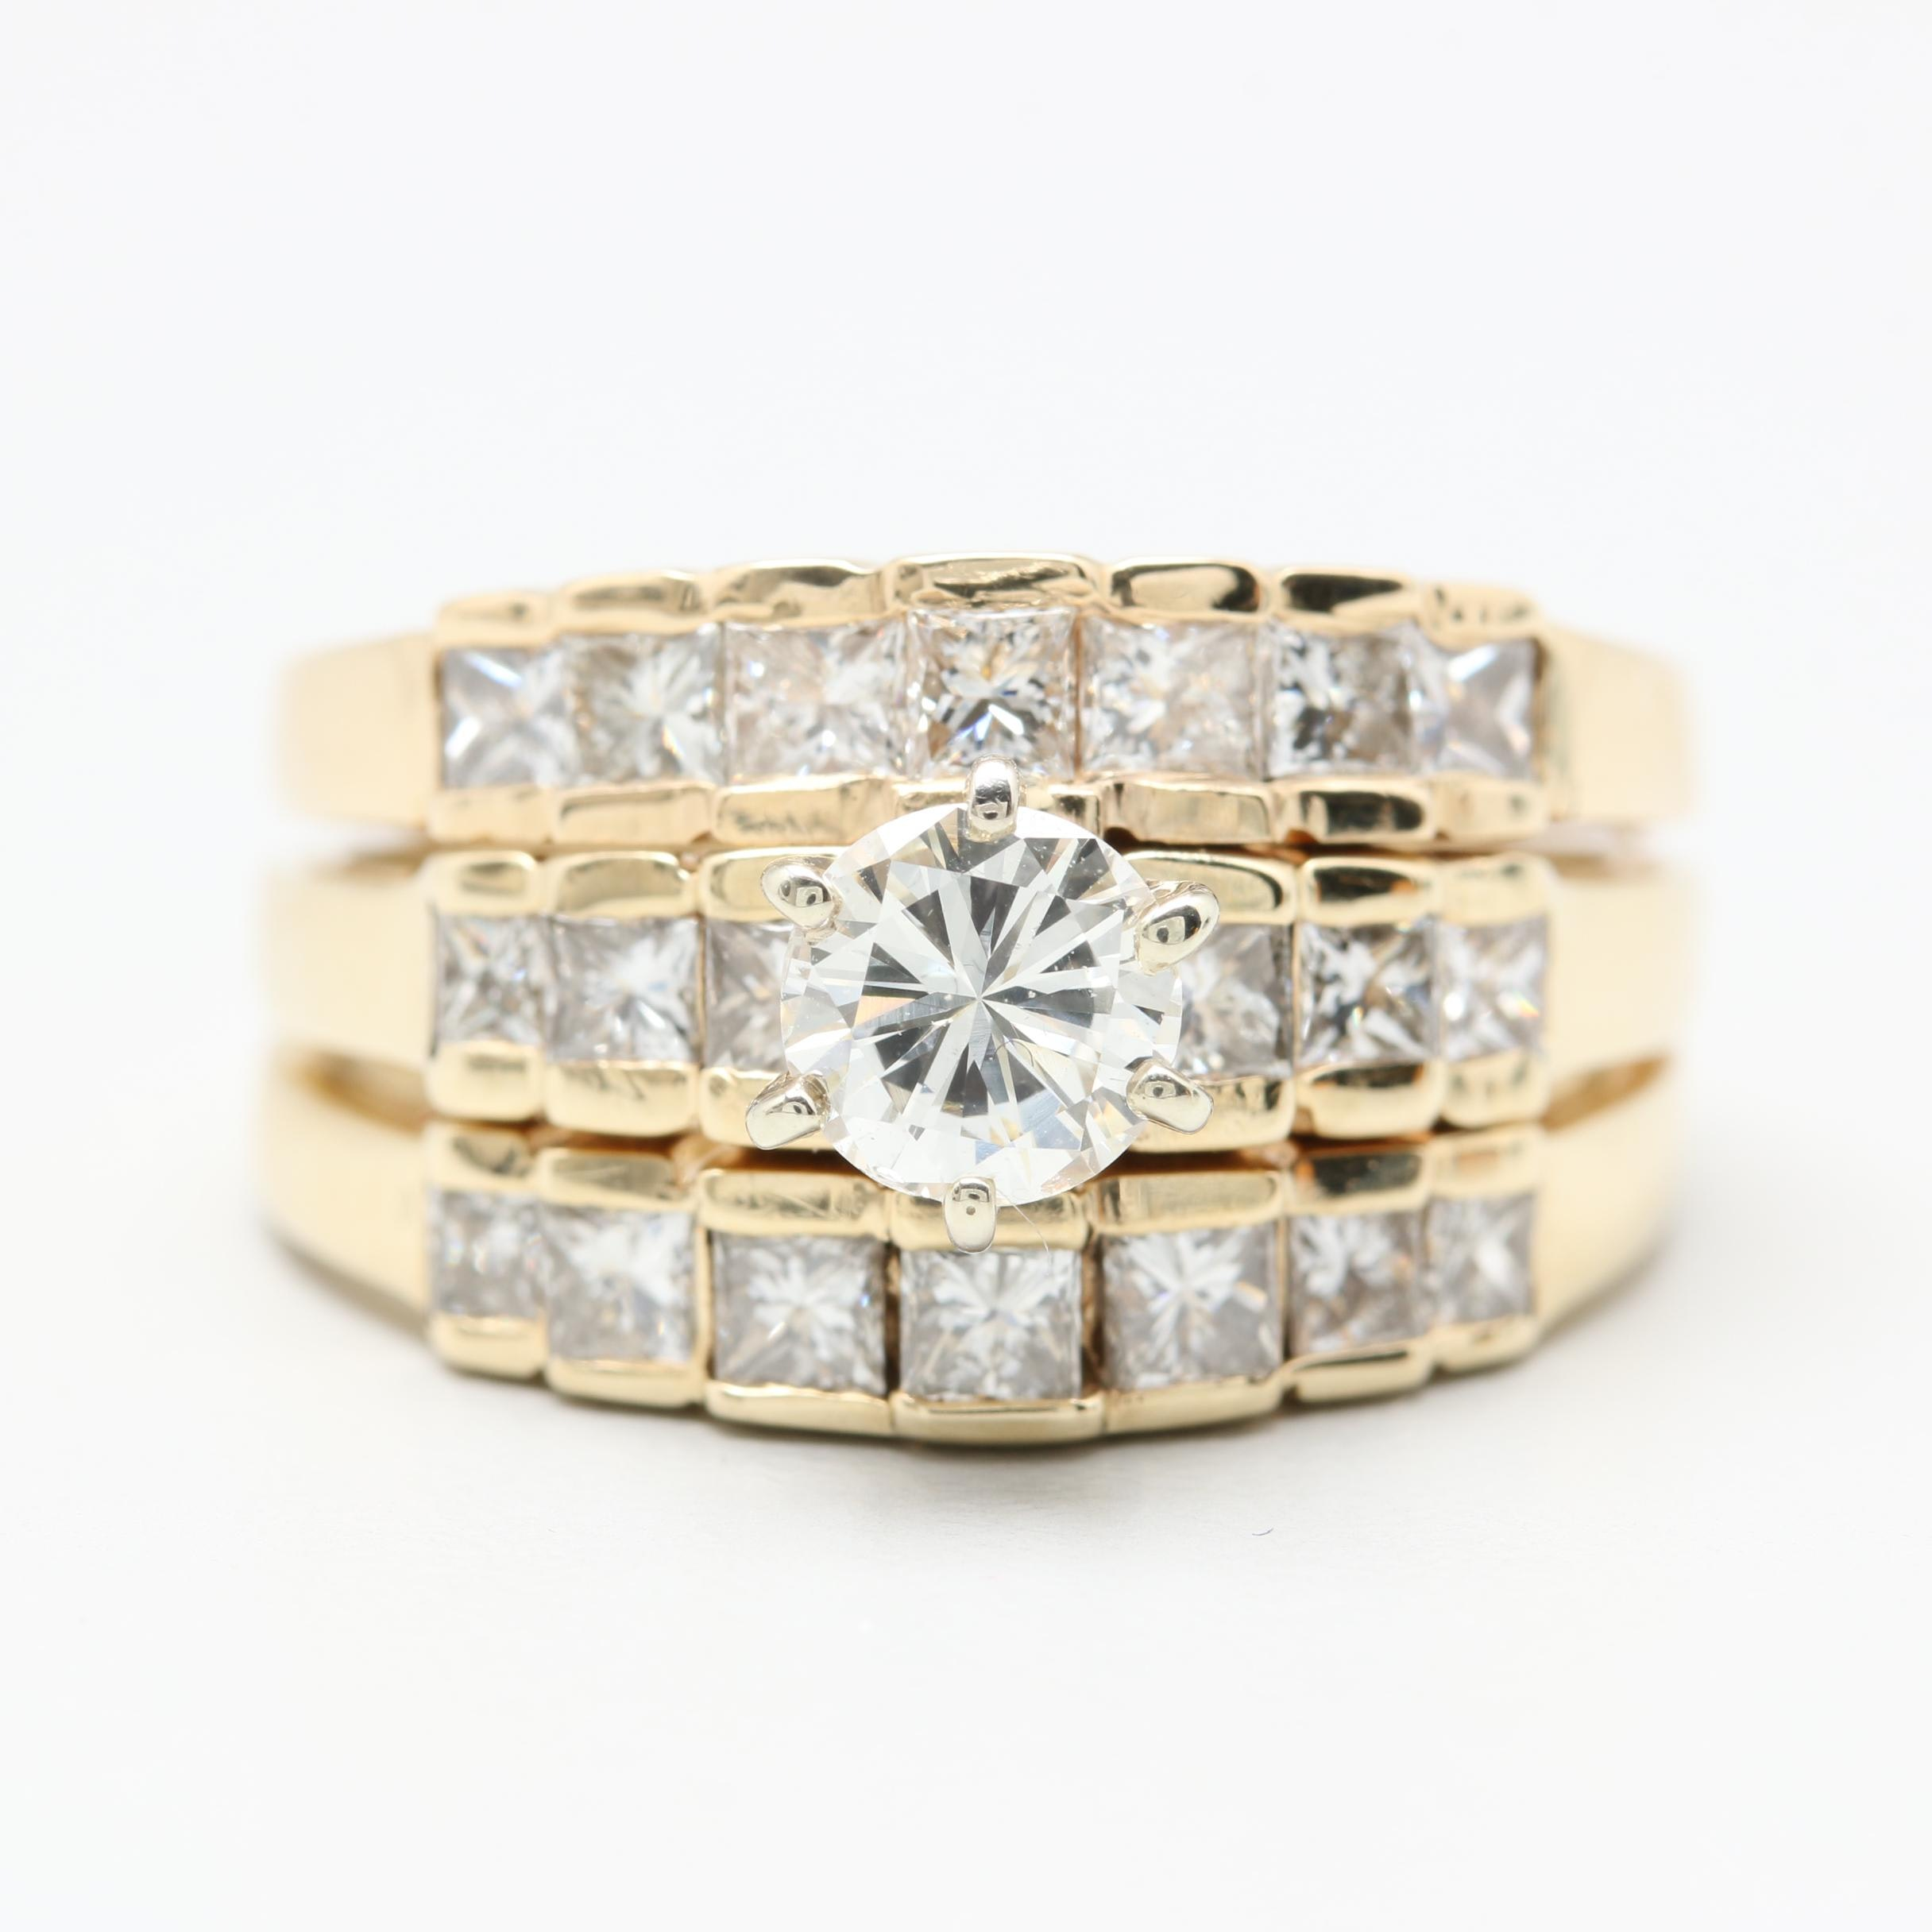 14K Yellow Gold 2.09 CTW Diamond Ring